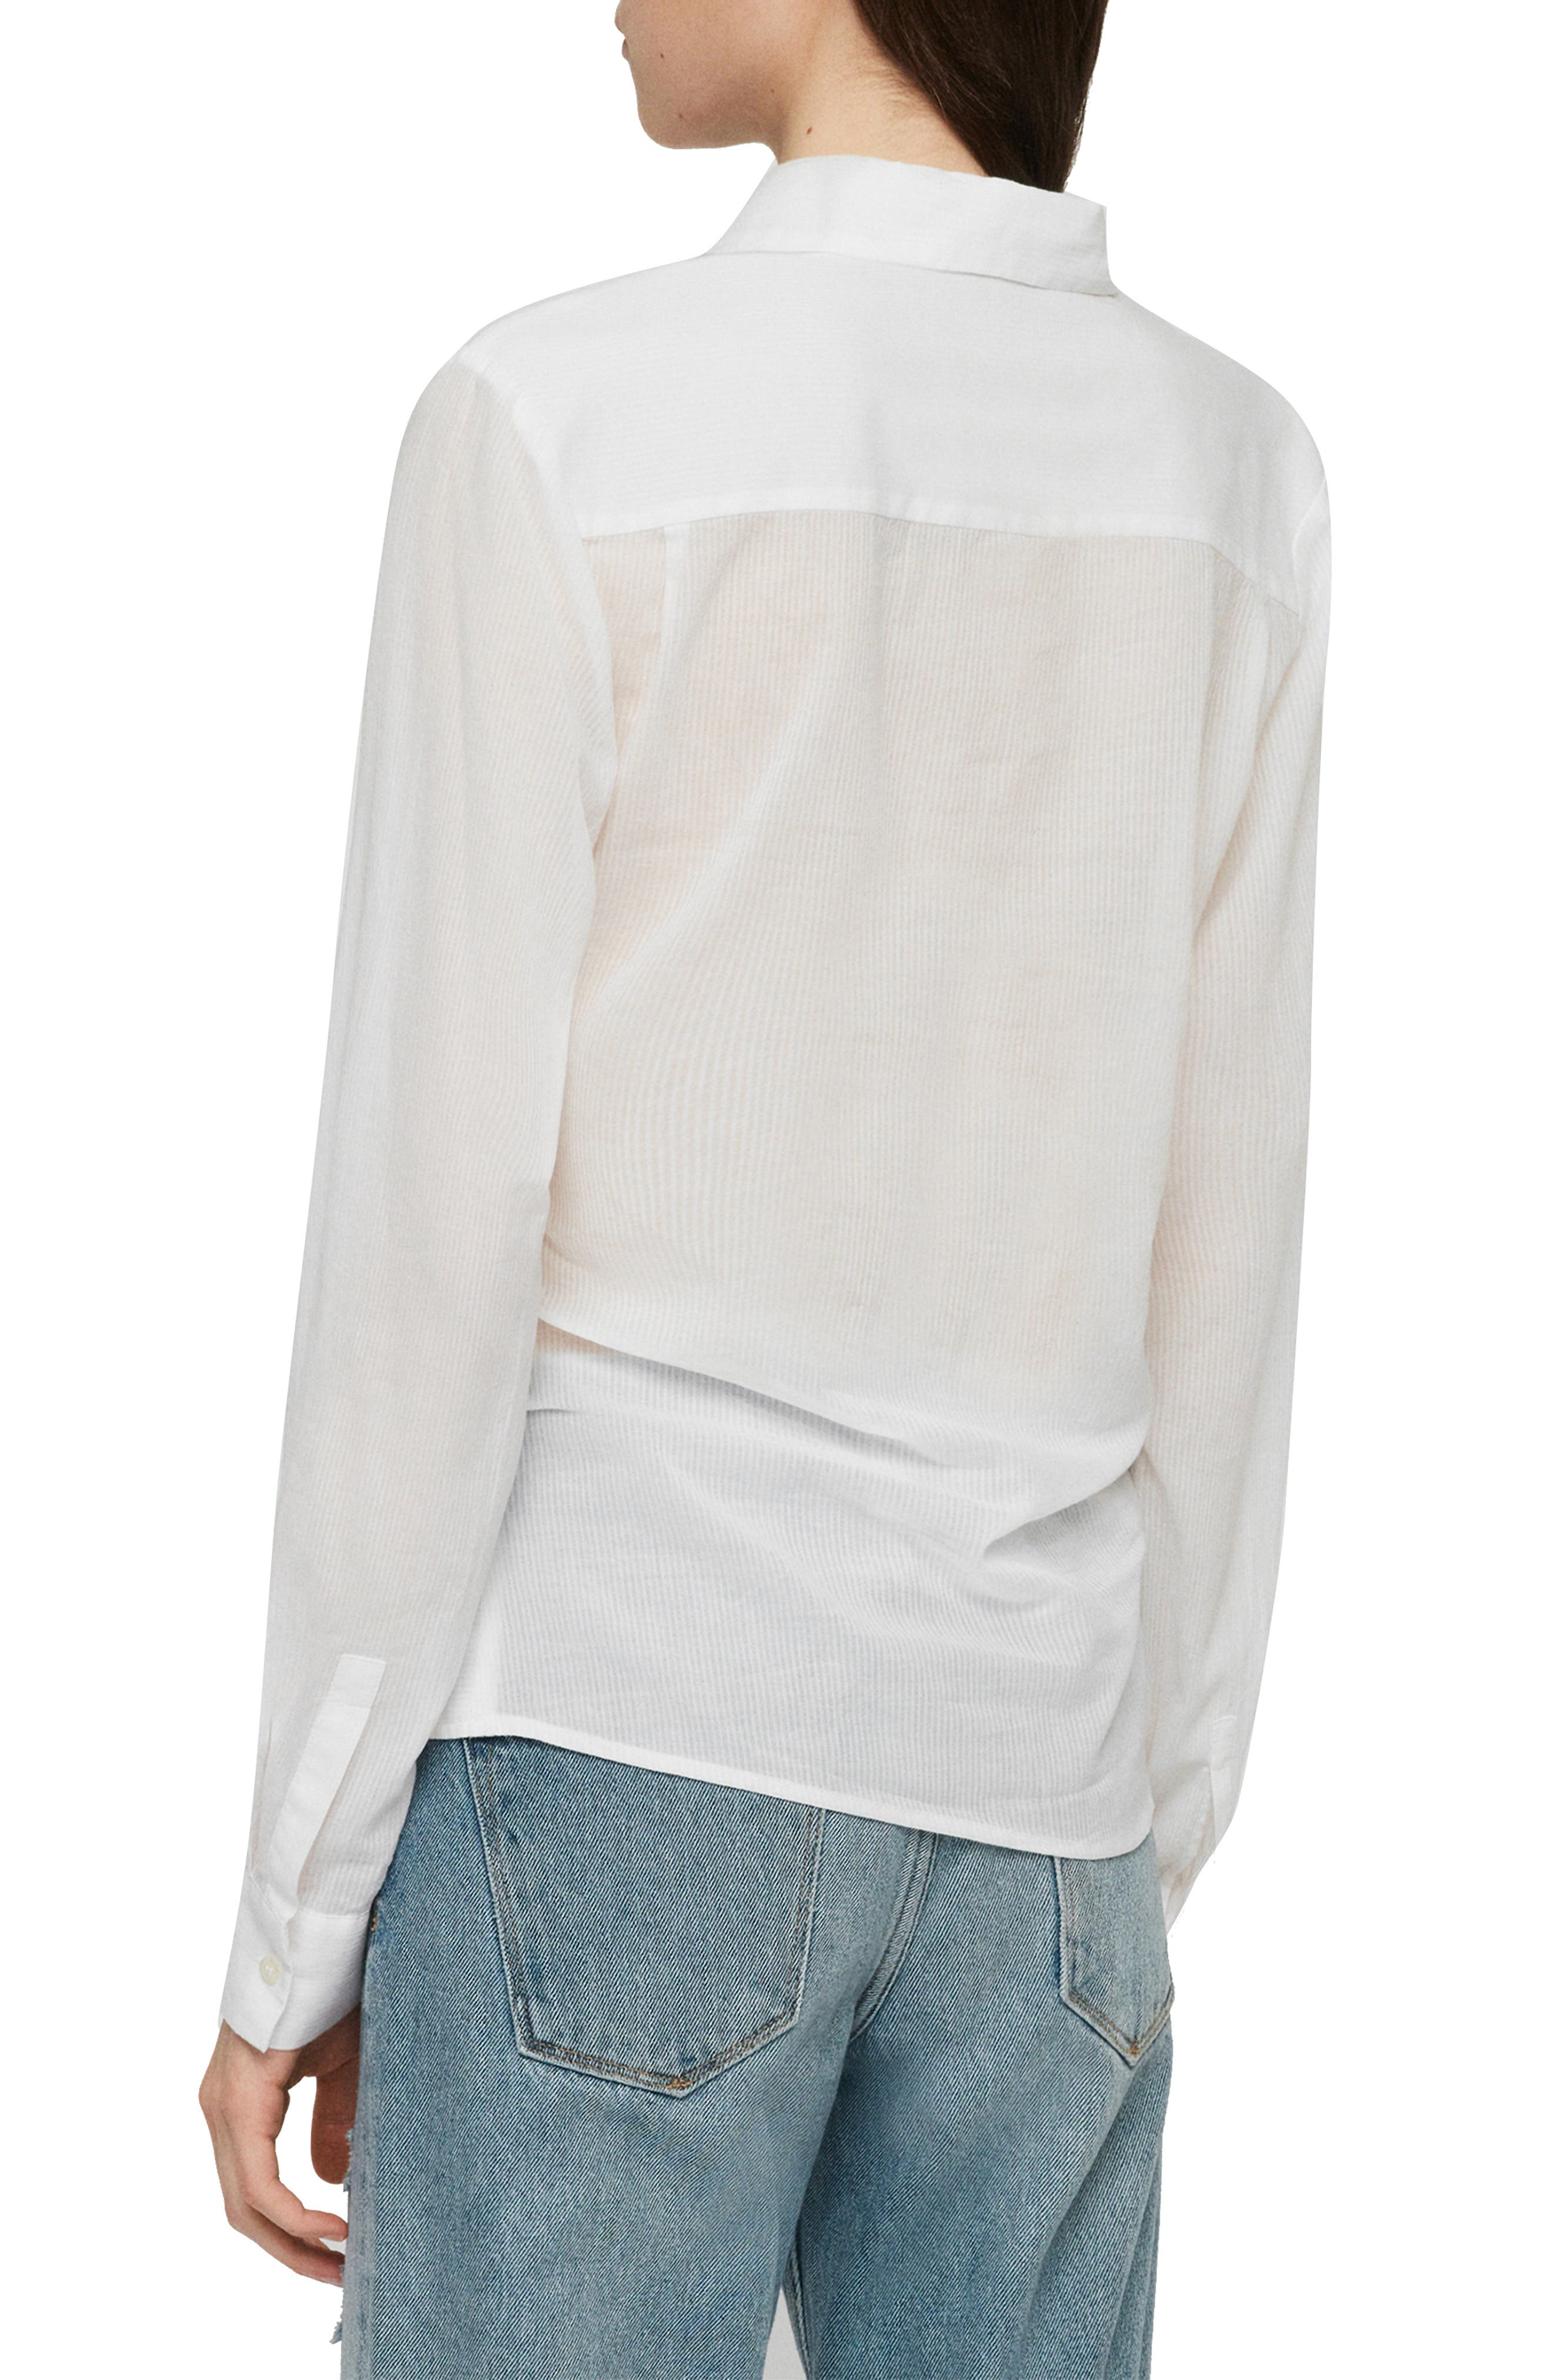 ALLSAINTS, Sirena Front Tie Shirt, Alternate thumbnail 2, color, CHALK WHITE